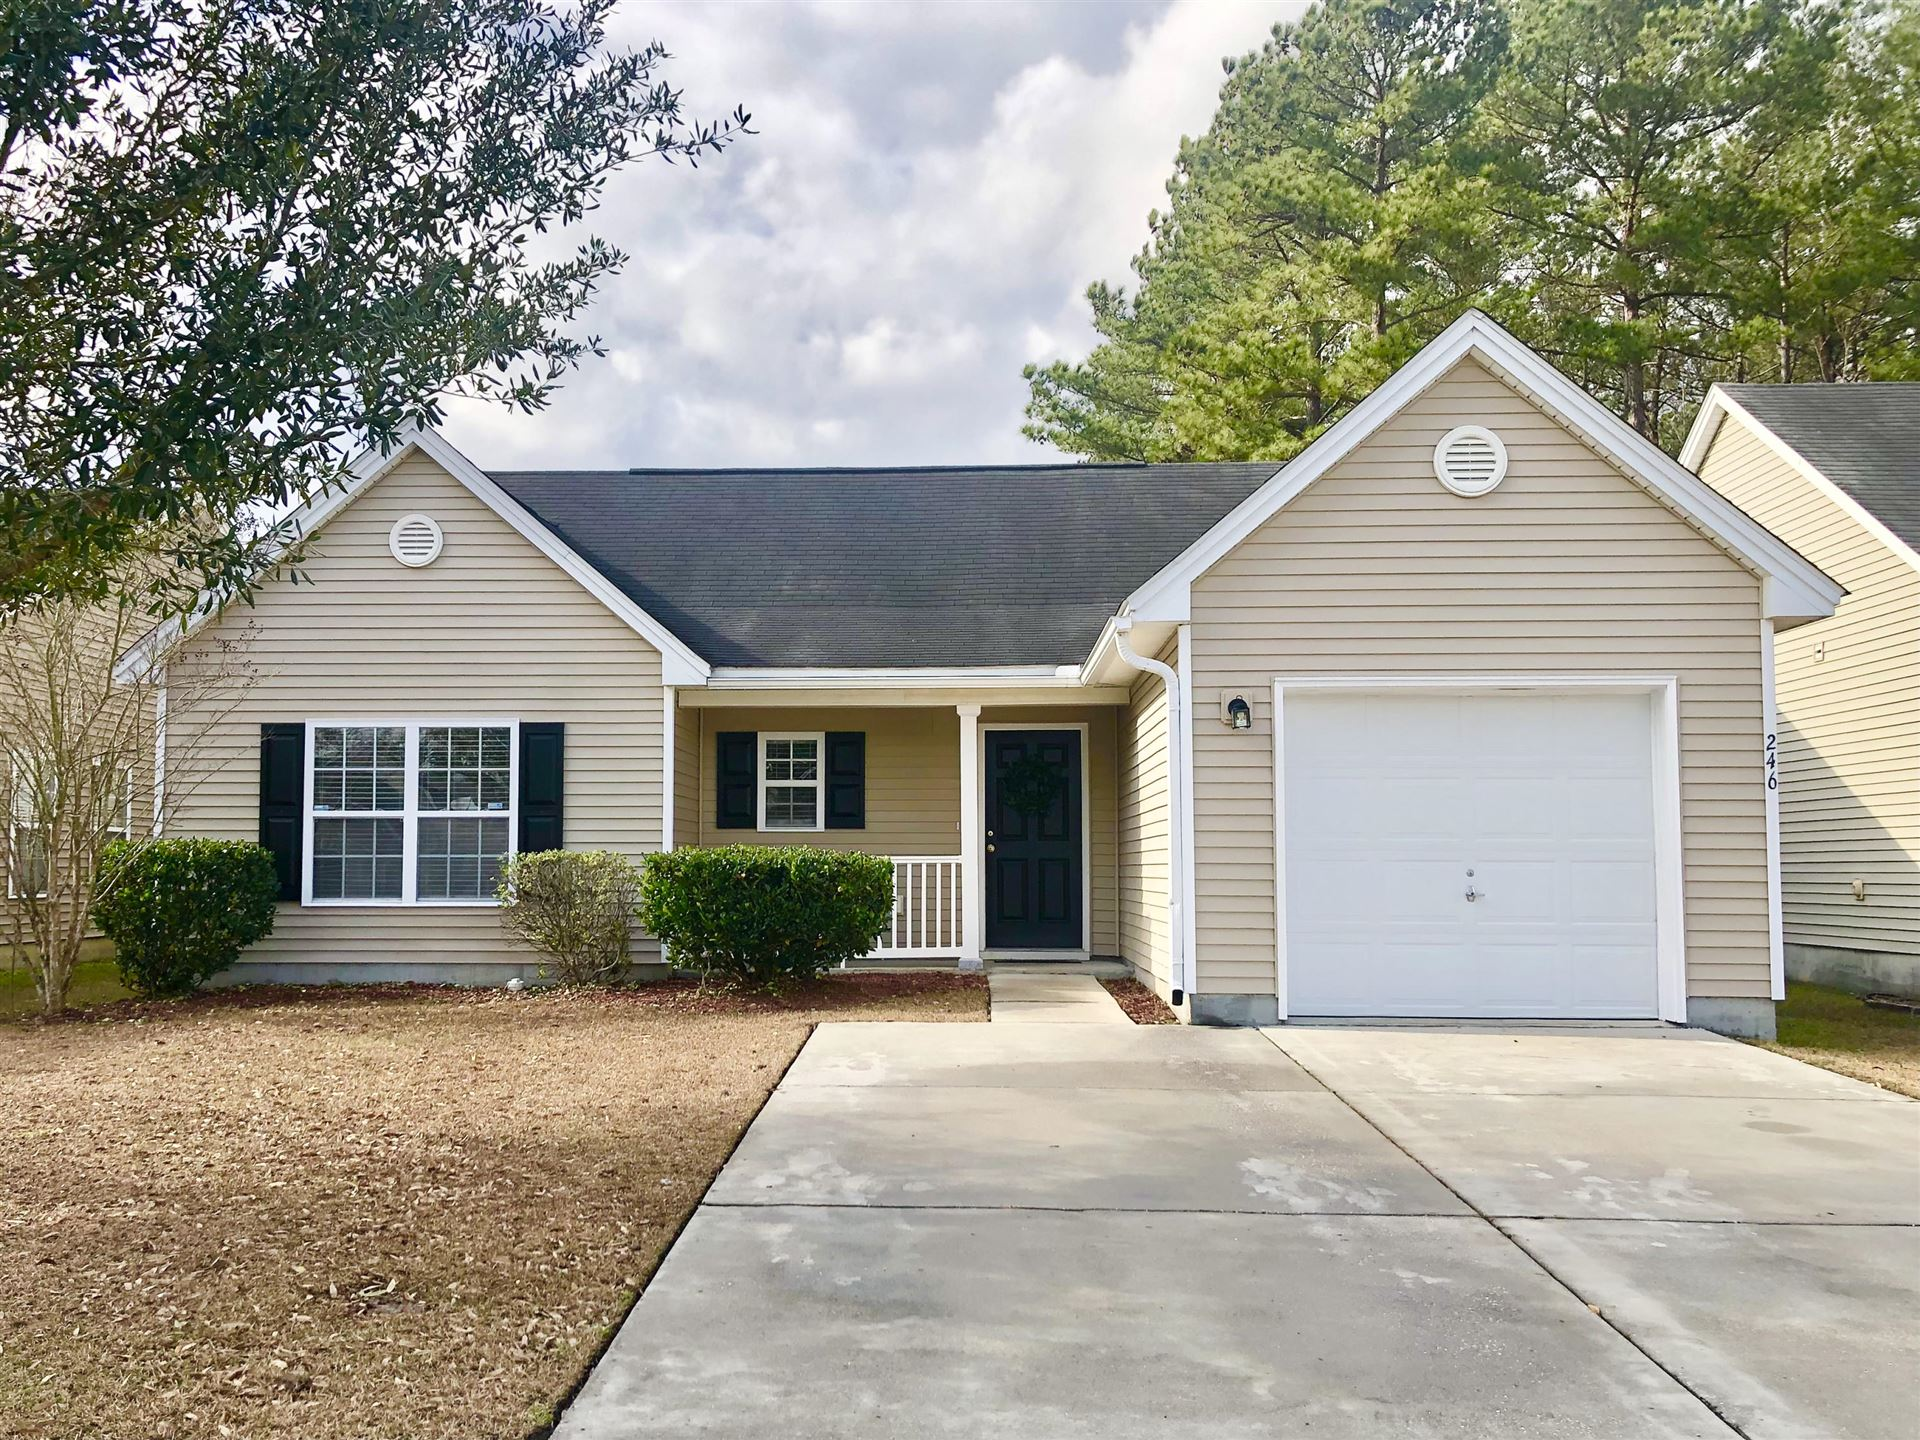 Photo of 246 Avonshire Drive, Summerville, SC 29483 (MLS # 21002166)